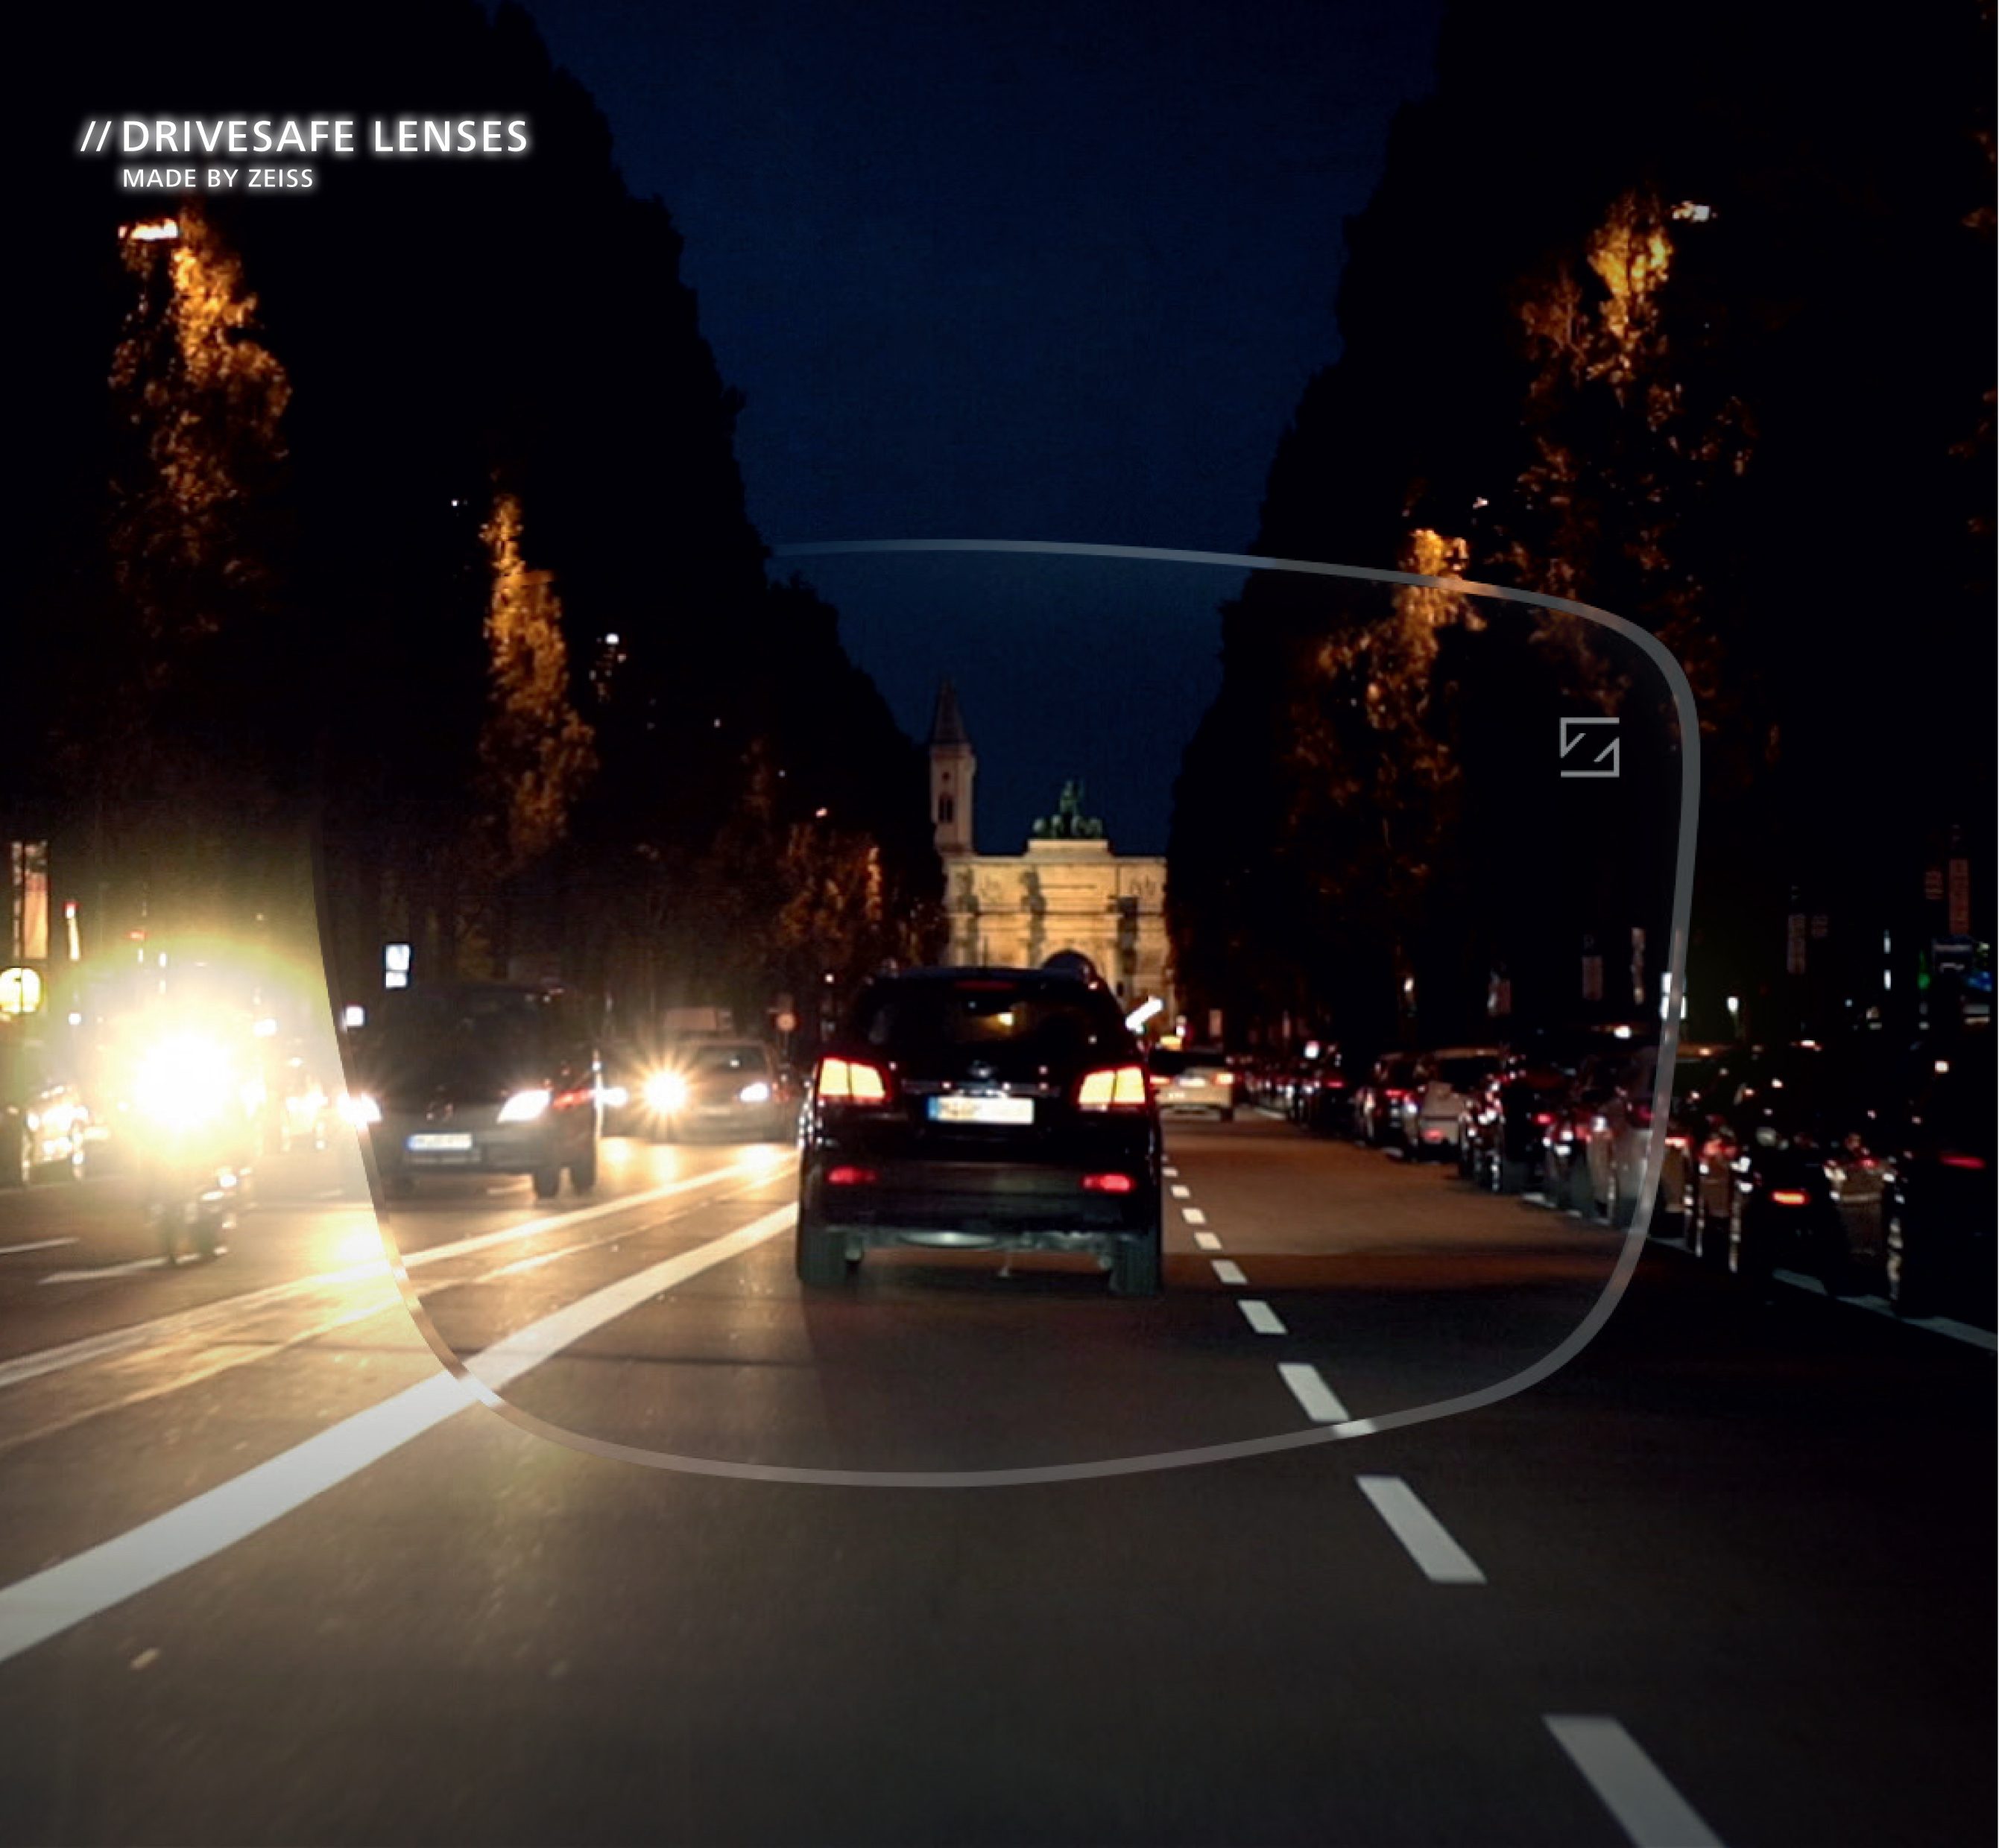 Zeiss DriveSafe at Night